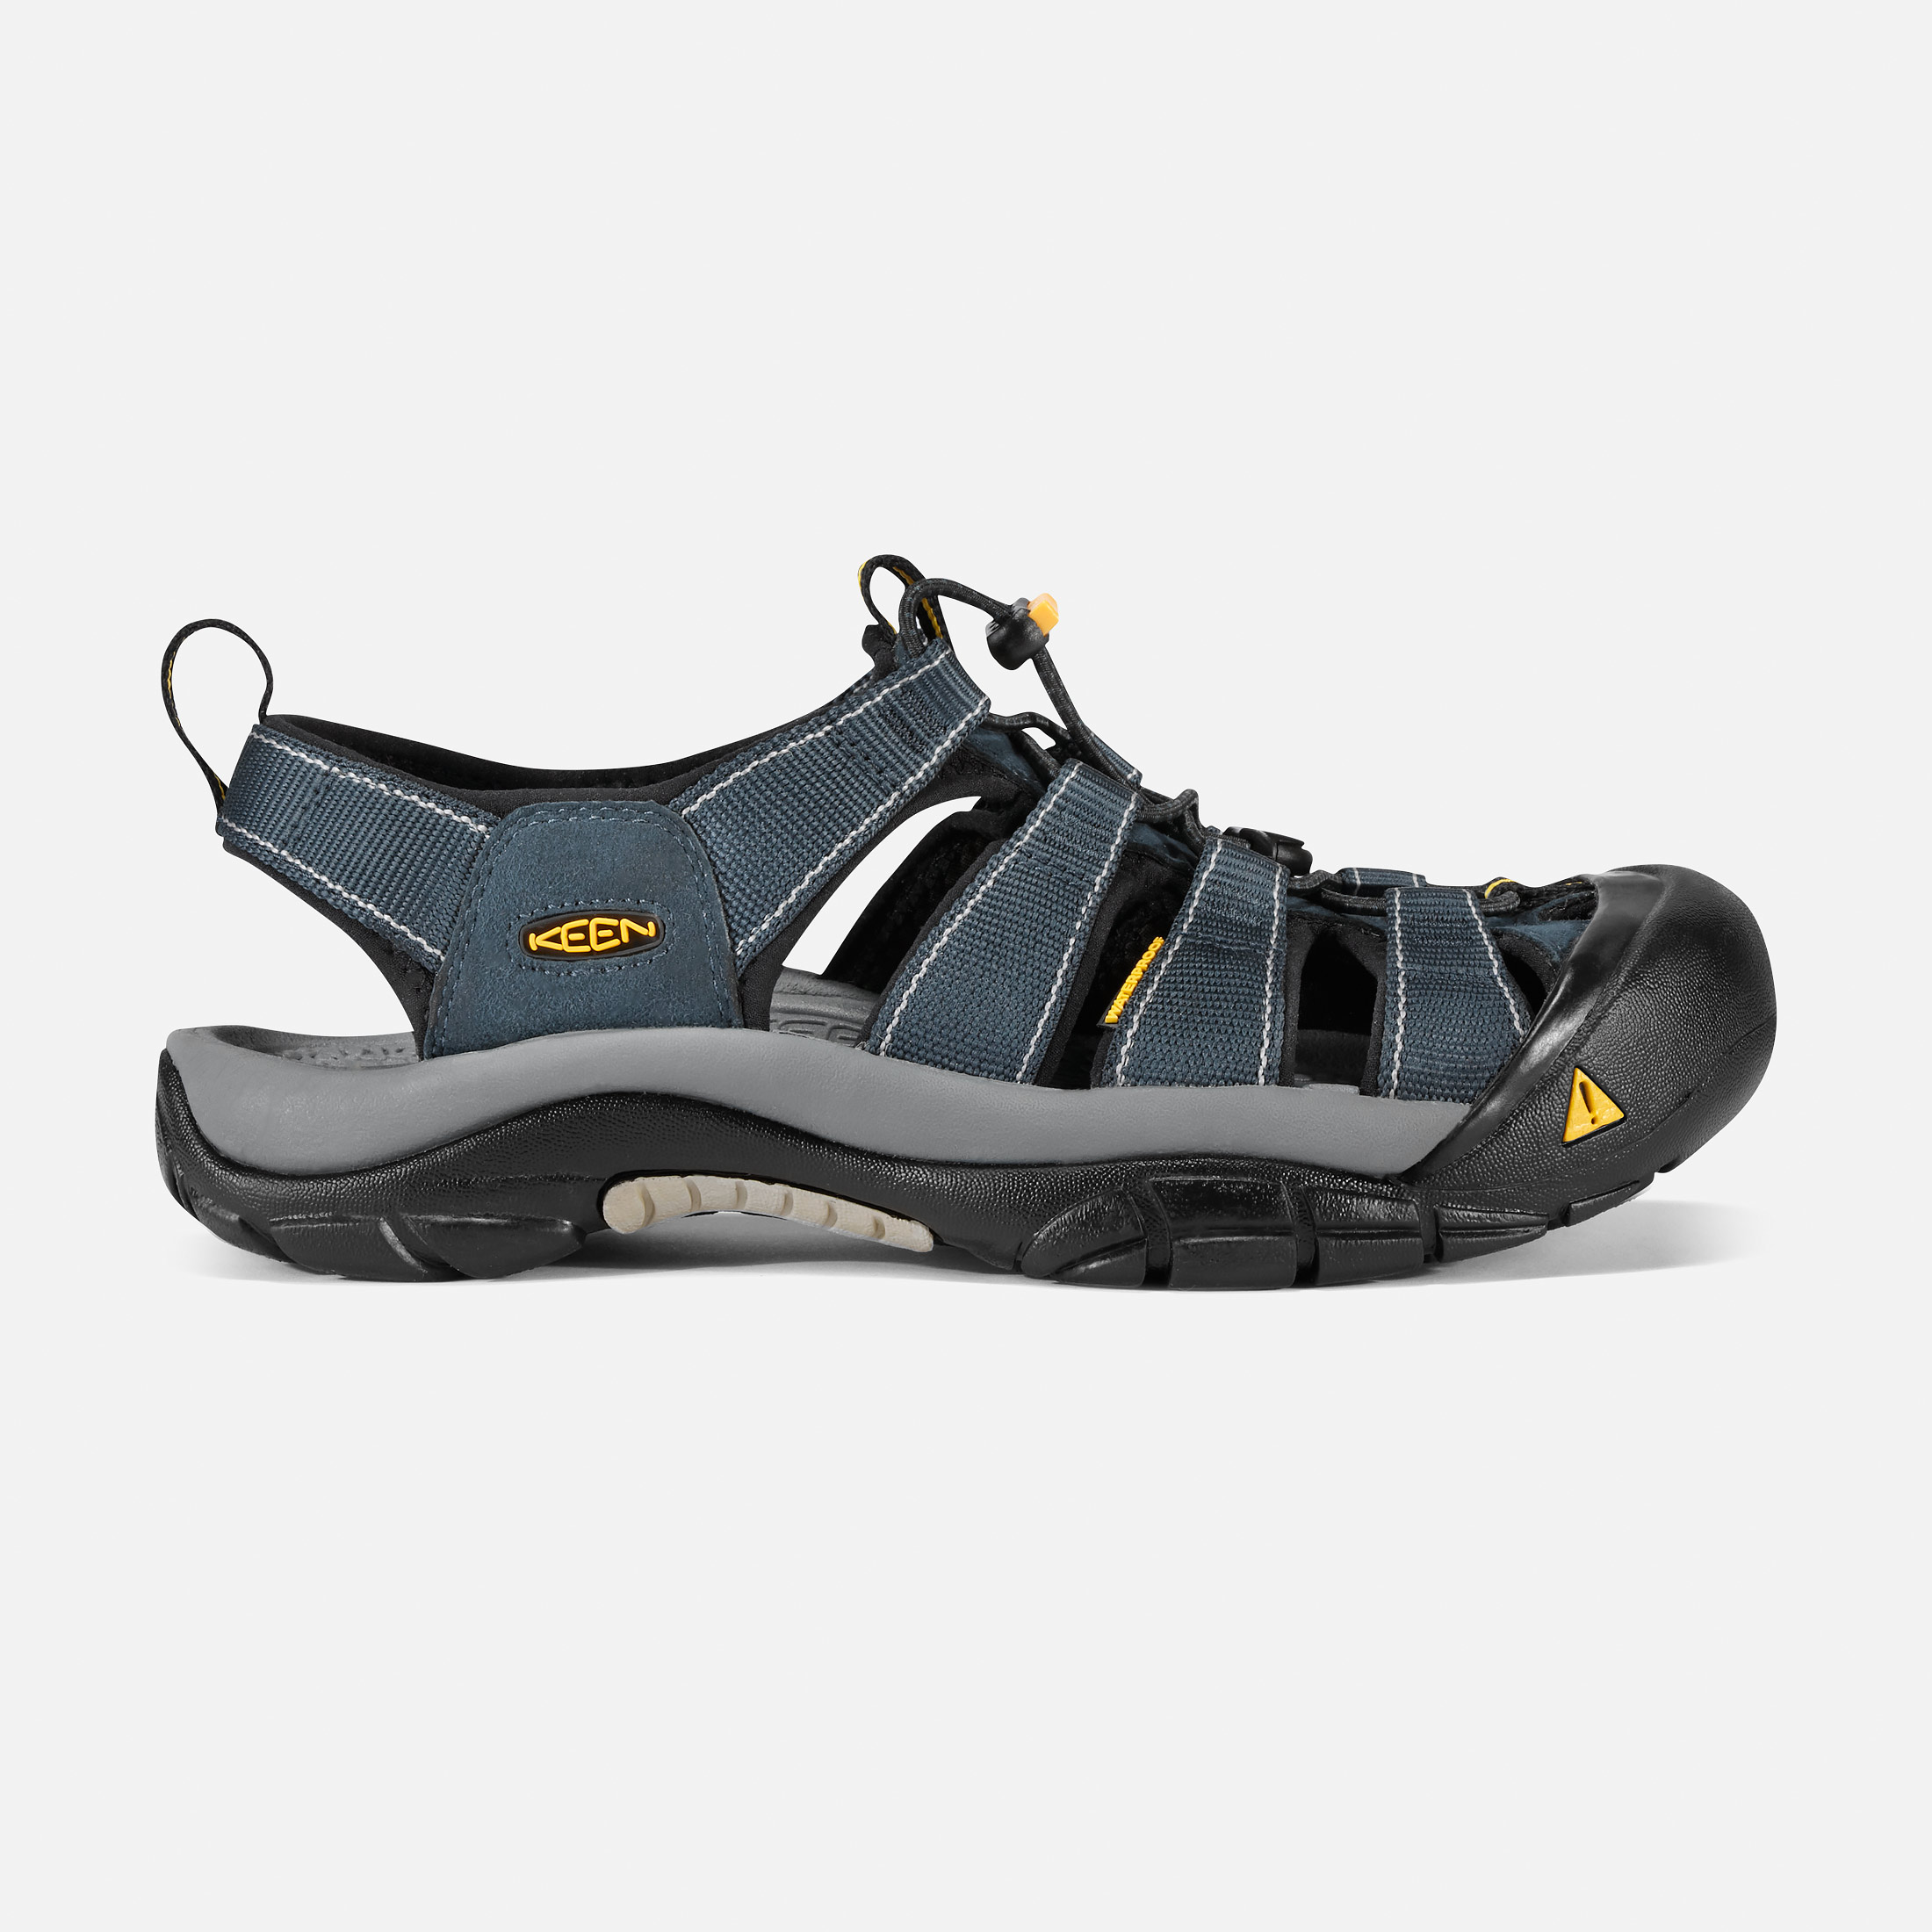 27ef56ccc51b2 Men s Newport H2 Hiking Sandals - Water Shoes